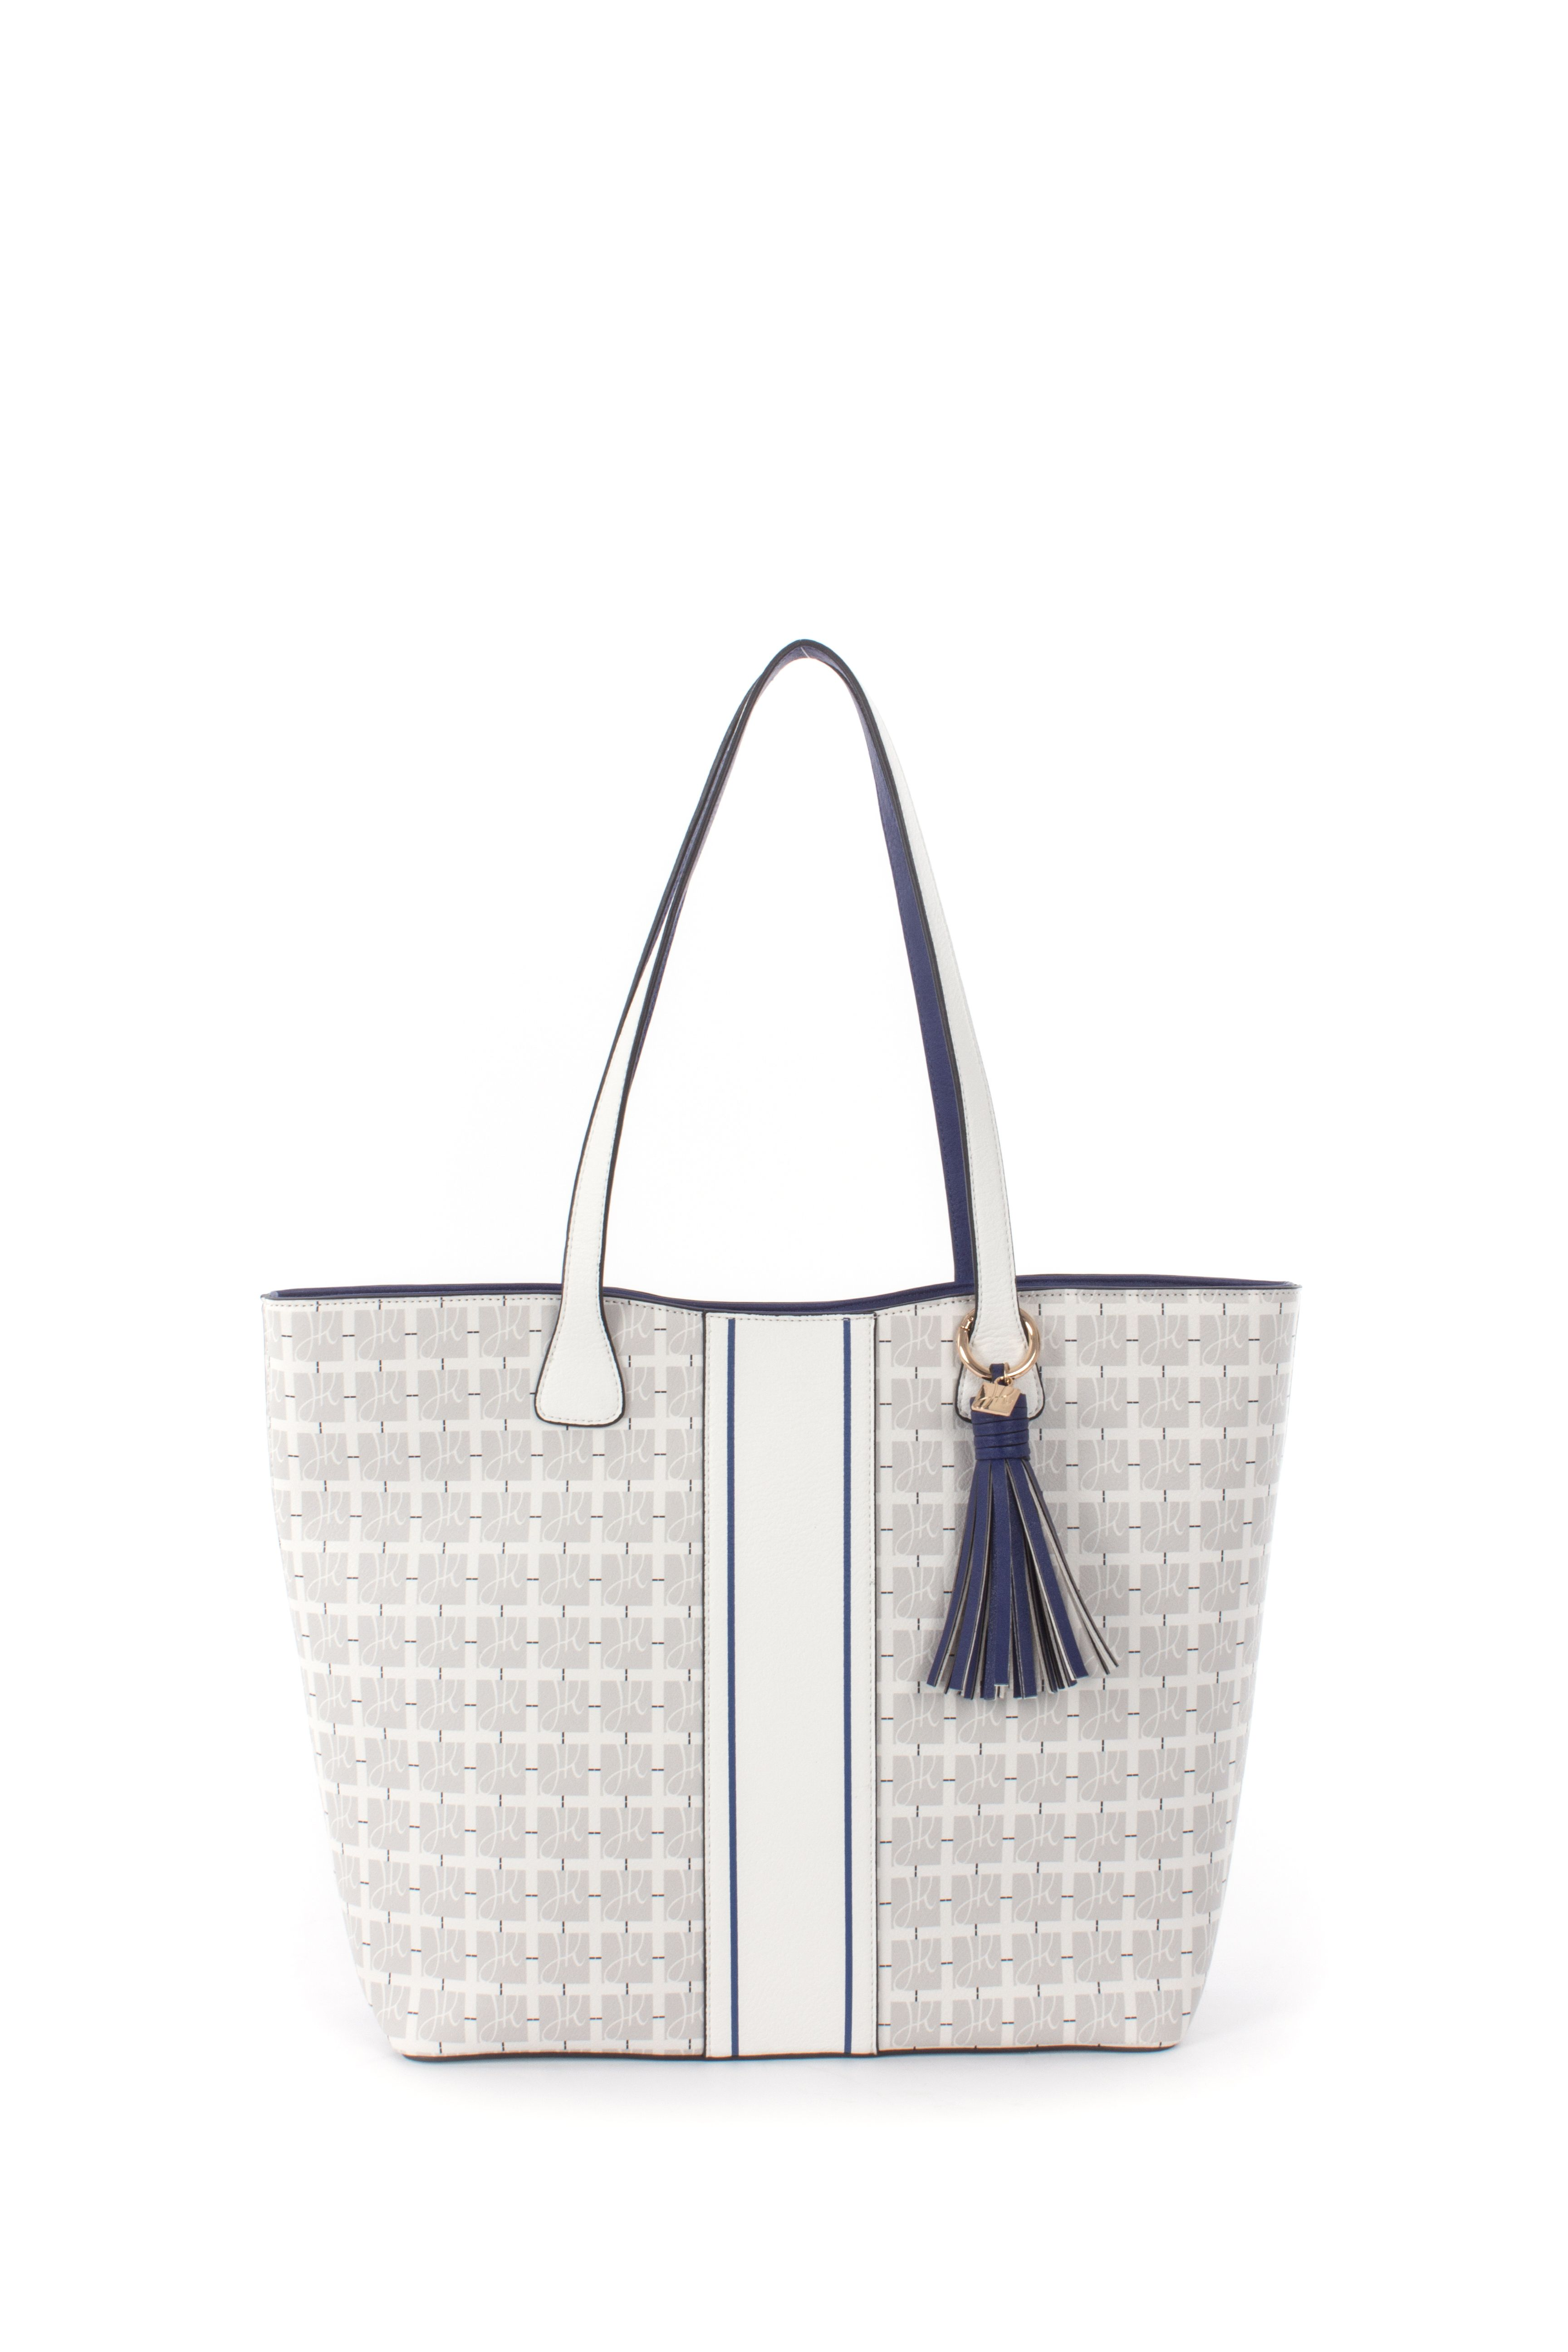 267338c2a5d Collection Kanata: Tote color white and blue, style 191961 ...